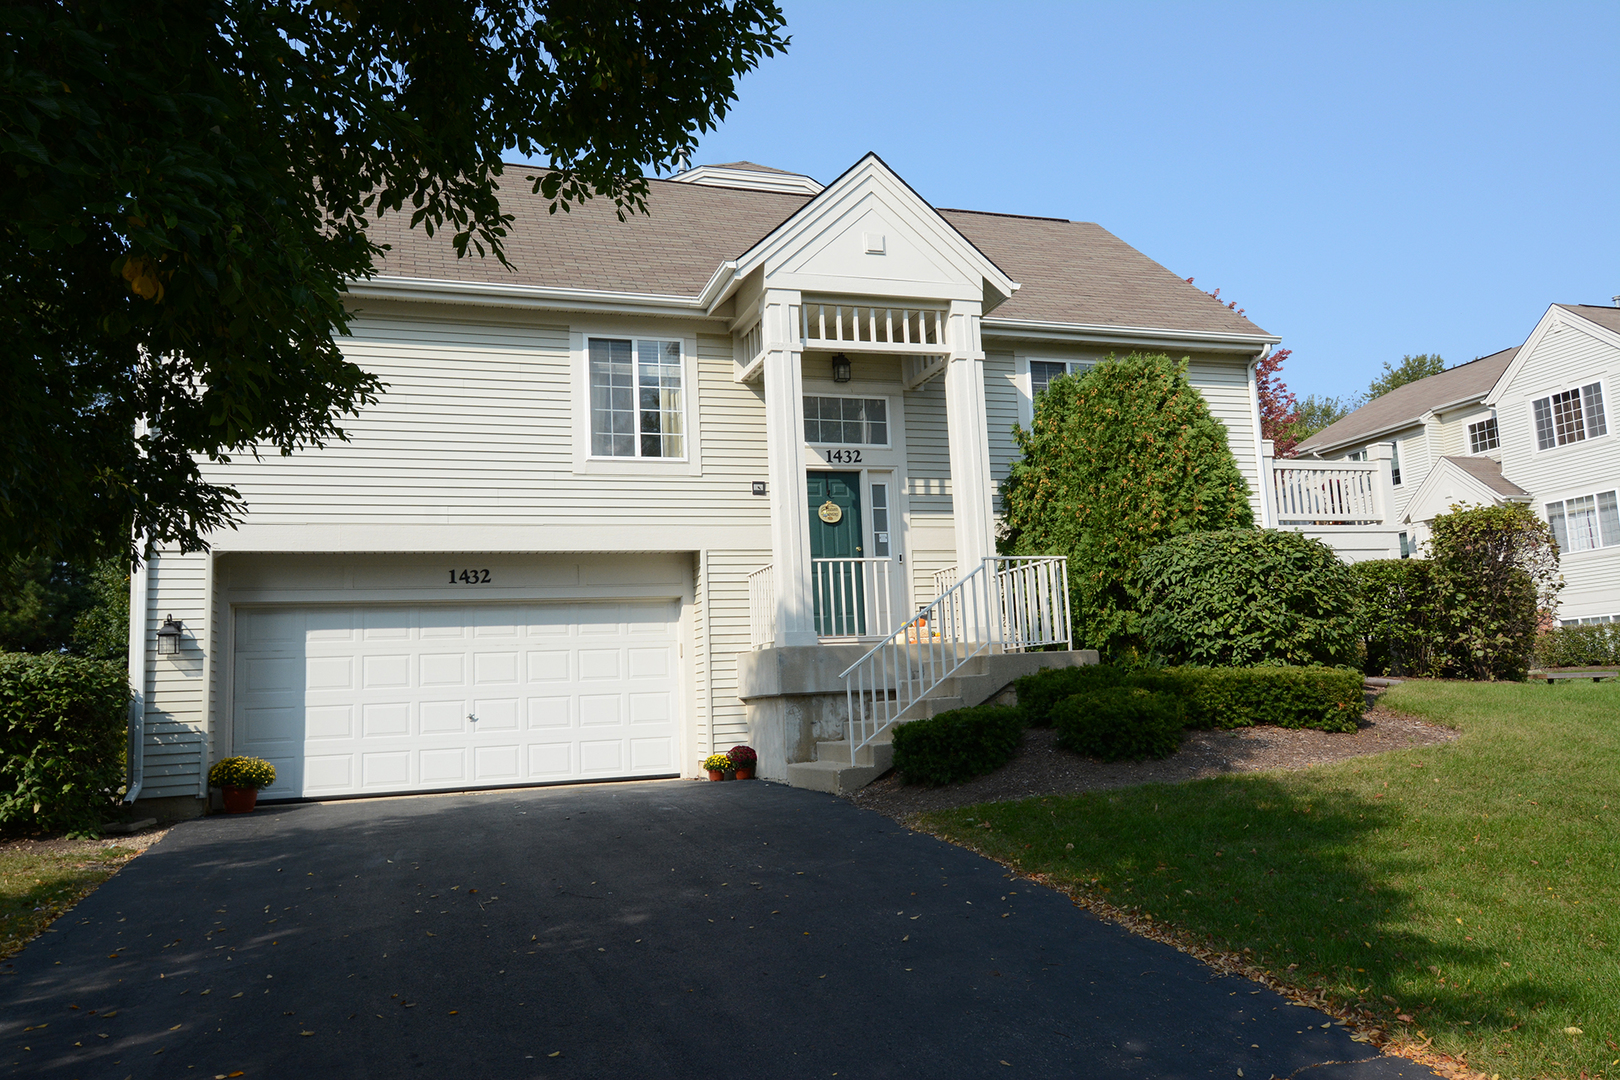 Photo for 1432 New Haven Drive, Cary, IL 60013 (MLS # 10879215)